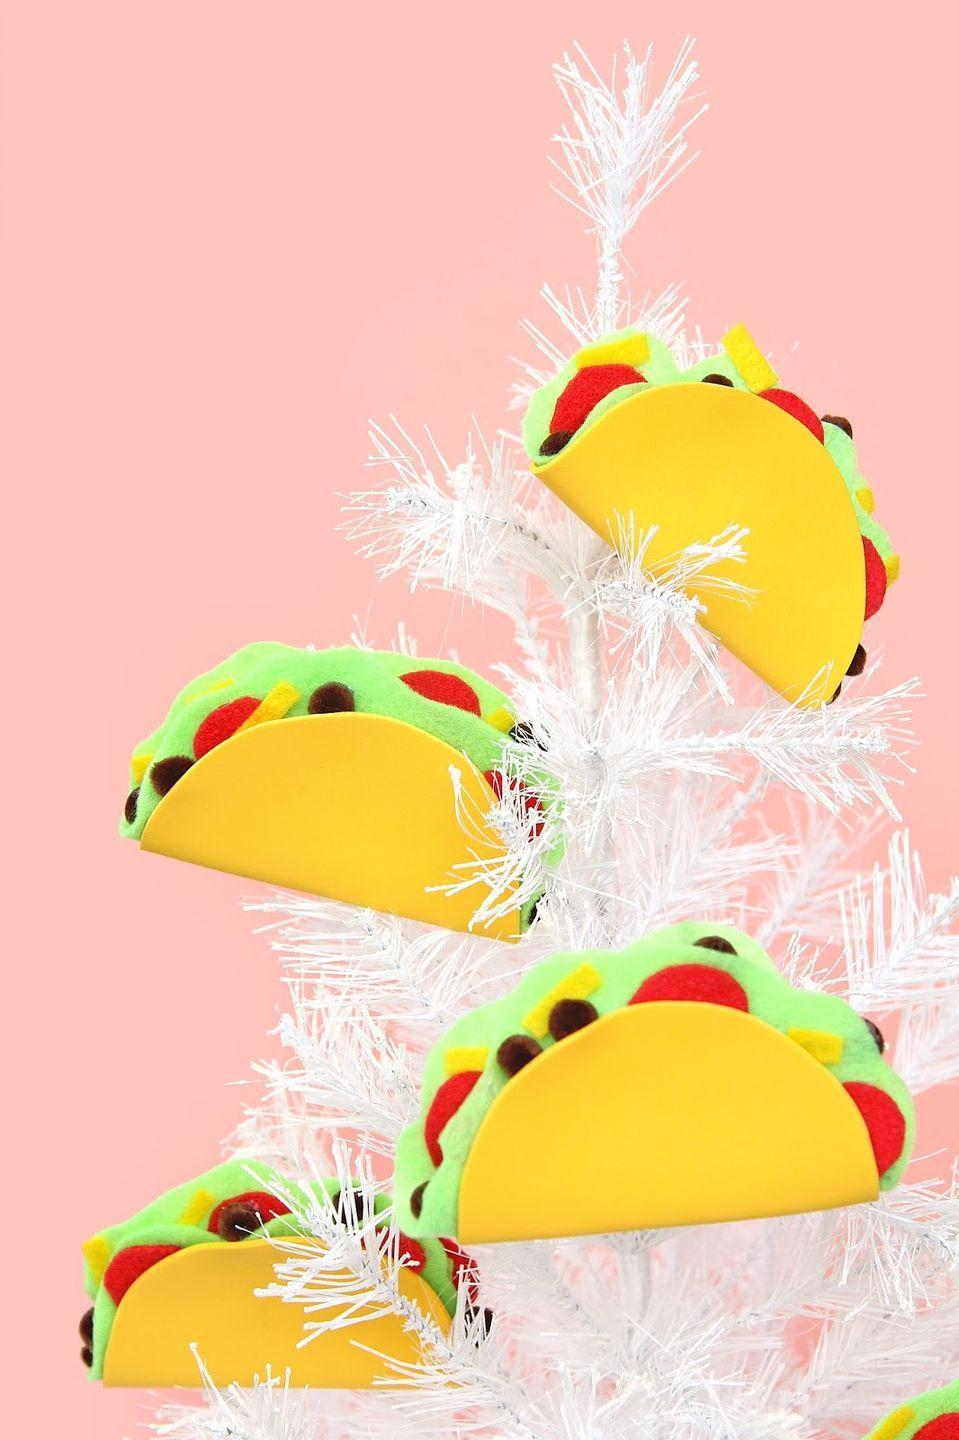 """<p>Who says you have to go traditional? Invest in a little felt to create this slightly out there, but super fun food-themed DIY ornament that makes the perfect quirky gift.</p><p><em>Get the tutorial at <a href=""""http://www.awwsam.com/2015/12/10-minute-diy-taco-holiday-ornaments.html"""" rel=""""nofollow noopener"""" target=""""_blank"""" data-ylk=""""slk:Aww Sam"""" class=""""link rapid-noclick-resp"""">Aww Sam</a>.</em></p><p><a class=""""link rapid-noclick-resp"""" href=""""https://www.amazon.com/gp/bestsellers/arts-crafts/1289531011/?tag=syn-yahoo-20&ascsubtag=%5Bartid%7C10072.g.34443405%5Bsrc%7Cyahoo-us"""" rel=""""nofollow noopener"""" target=""""_blank"""" data-ylk=""""slk:SHOP FELT"""">SHOP FELT</a></p>"""